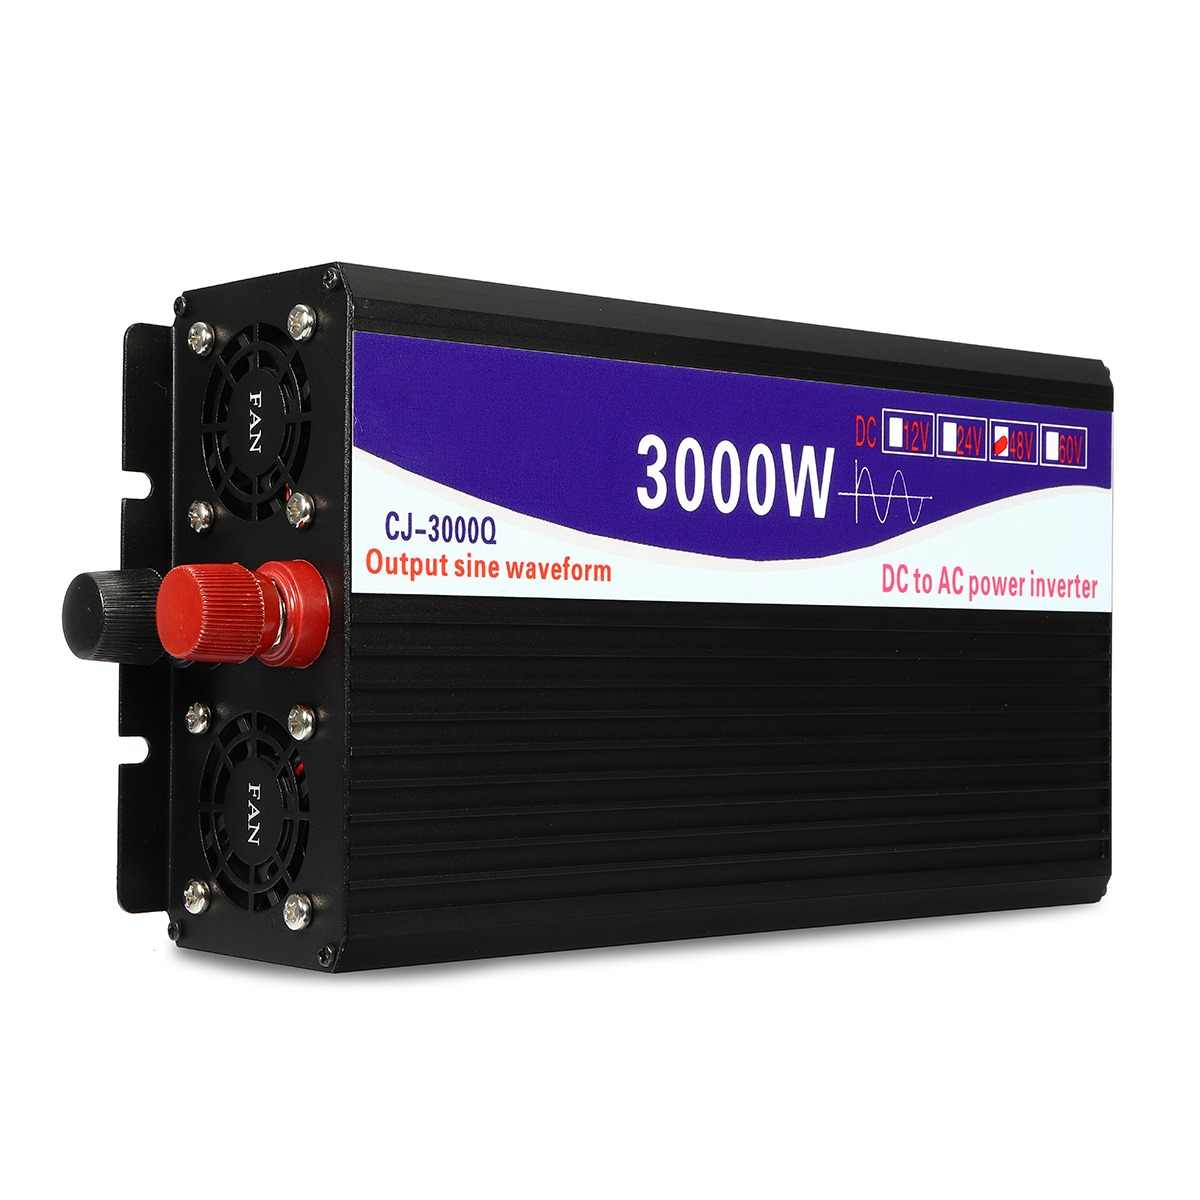 3000 W Inversor 12 V/24 V/48 V a 220 V Tensão do Transformador Conversor de Onda Senoidal Pura power Inverter + Duplo display LCD